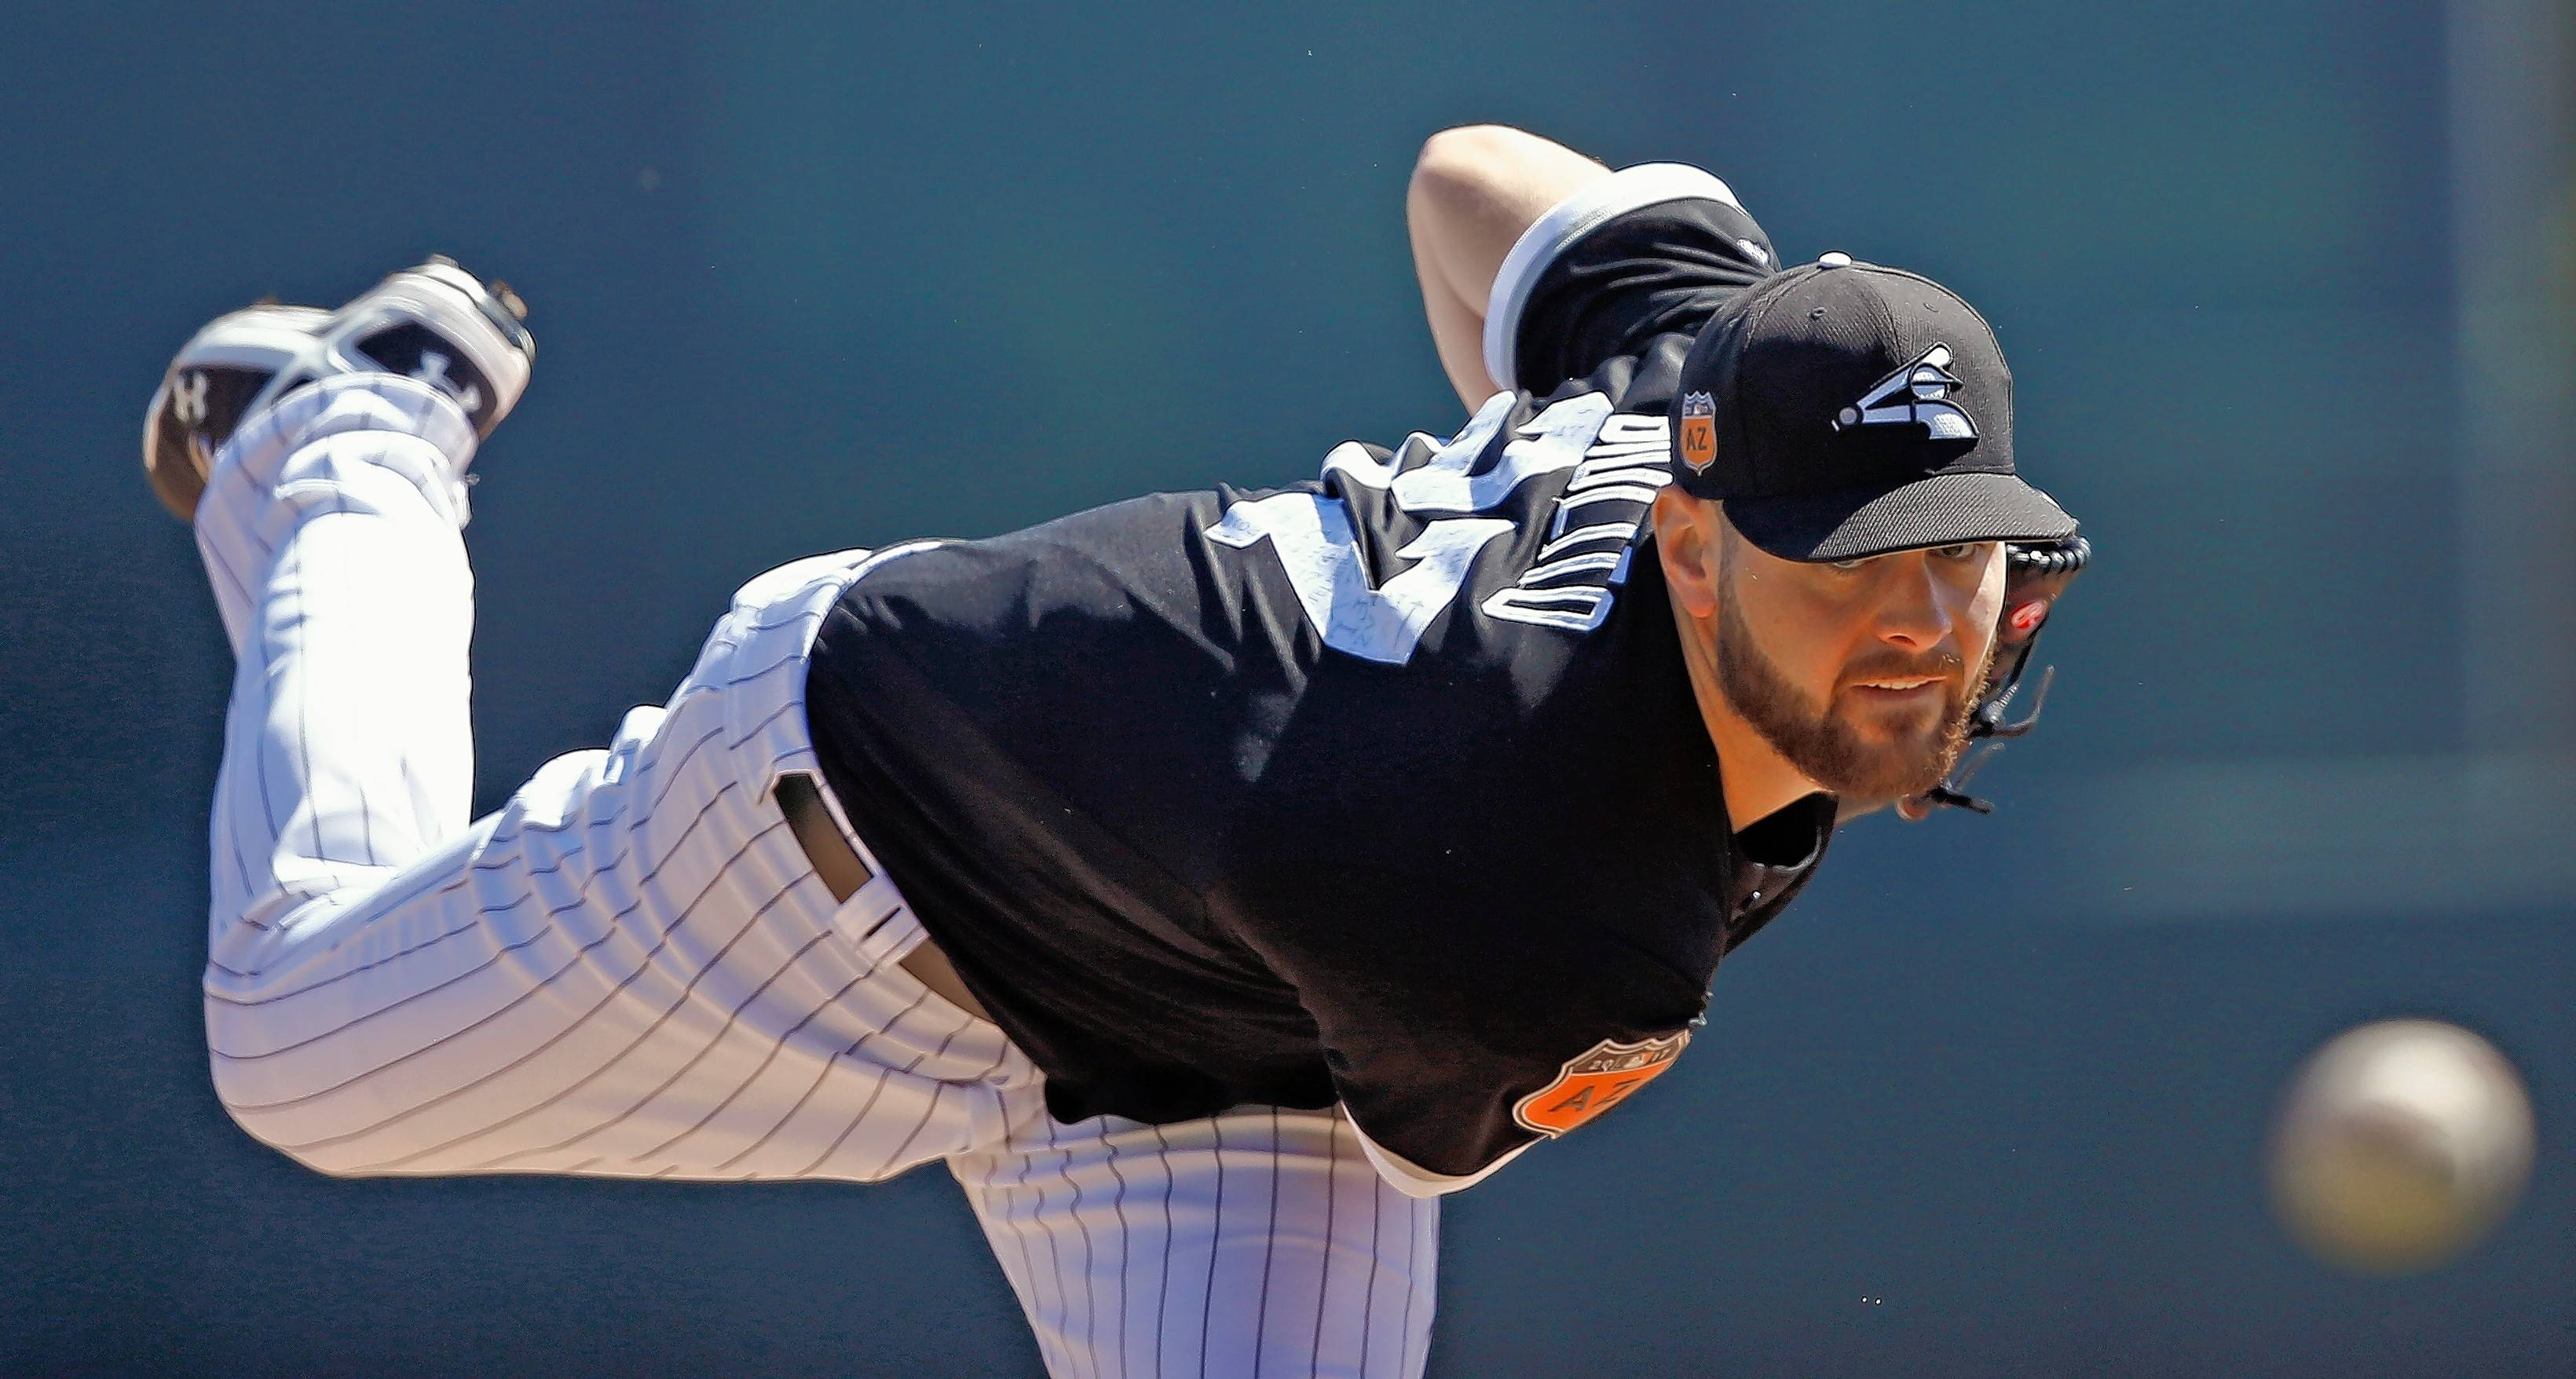 Class AAA Charlotte starting pitcher Lucas Giolito pitched a 7-inning no-hitter Thursday night in the Knights' 4-0 win over Syracuse. The Chicago White Sox acquired Giolito from the Washington Nationals in the Adam Eaton trade.